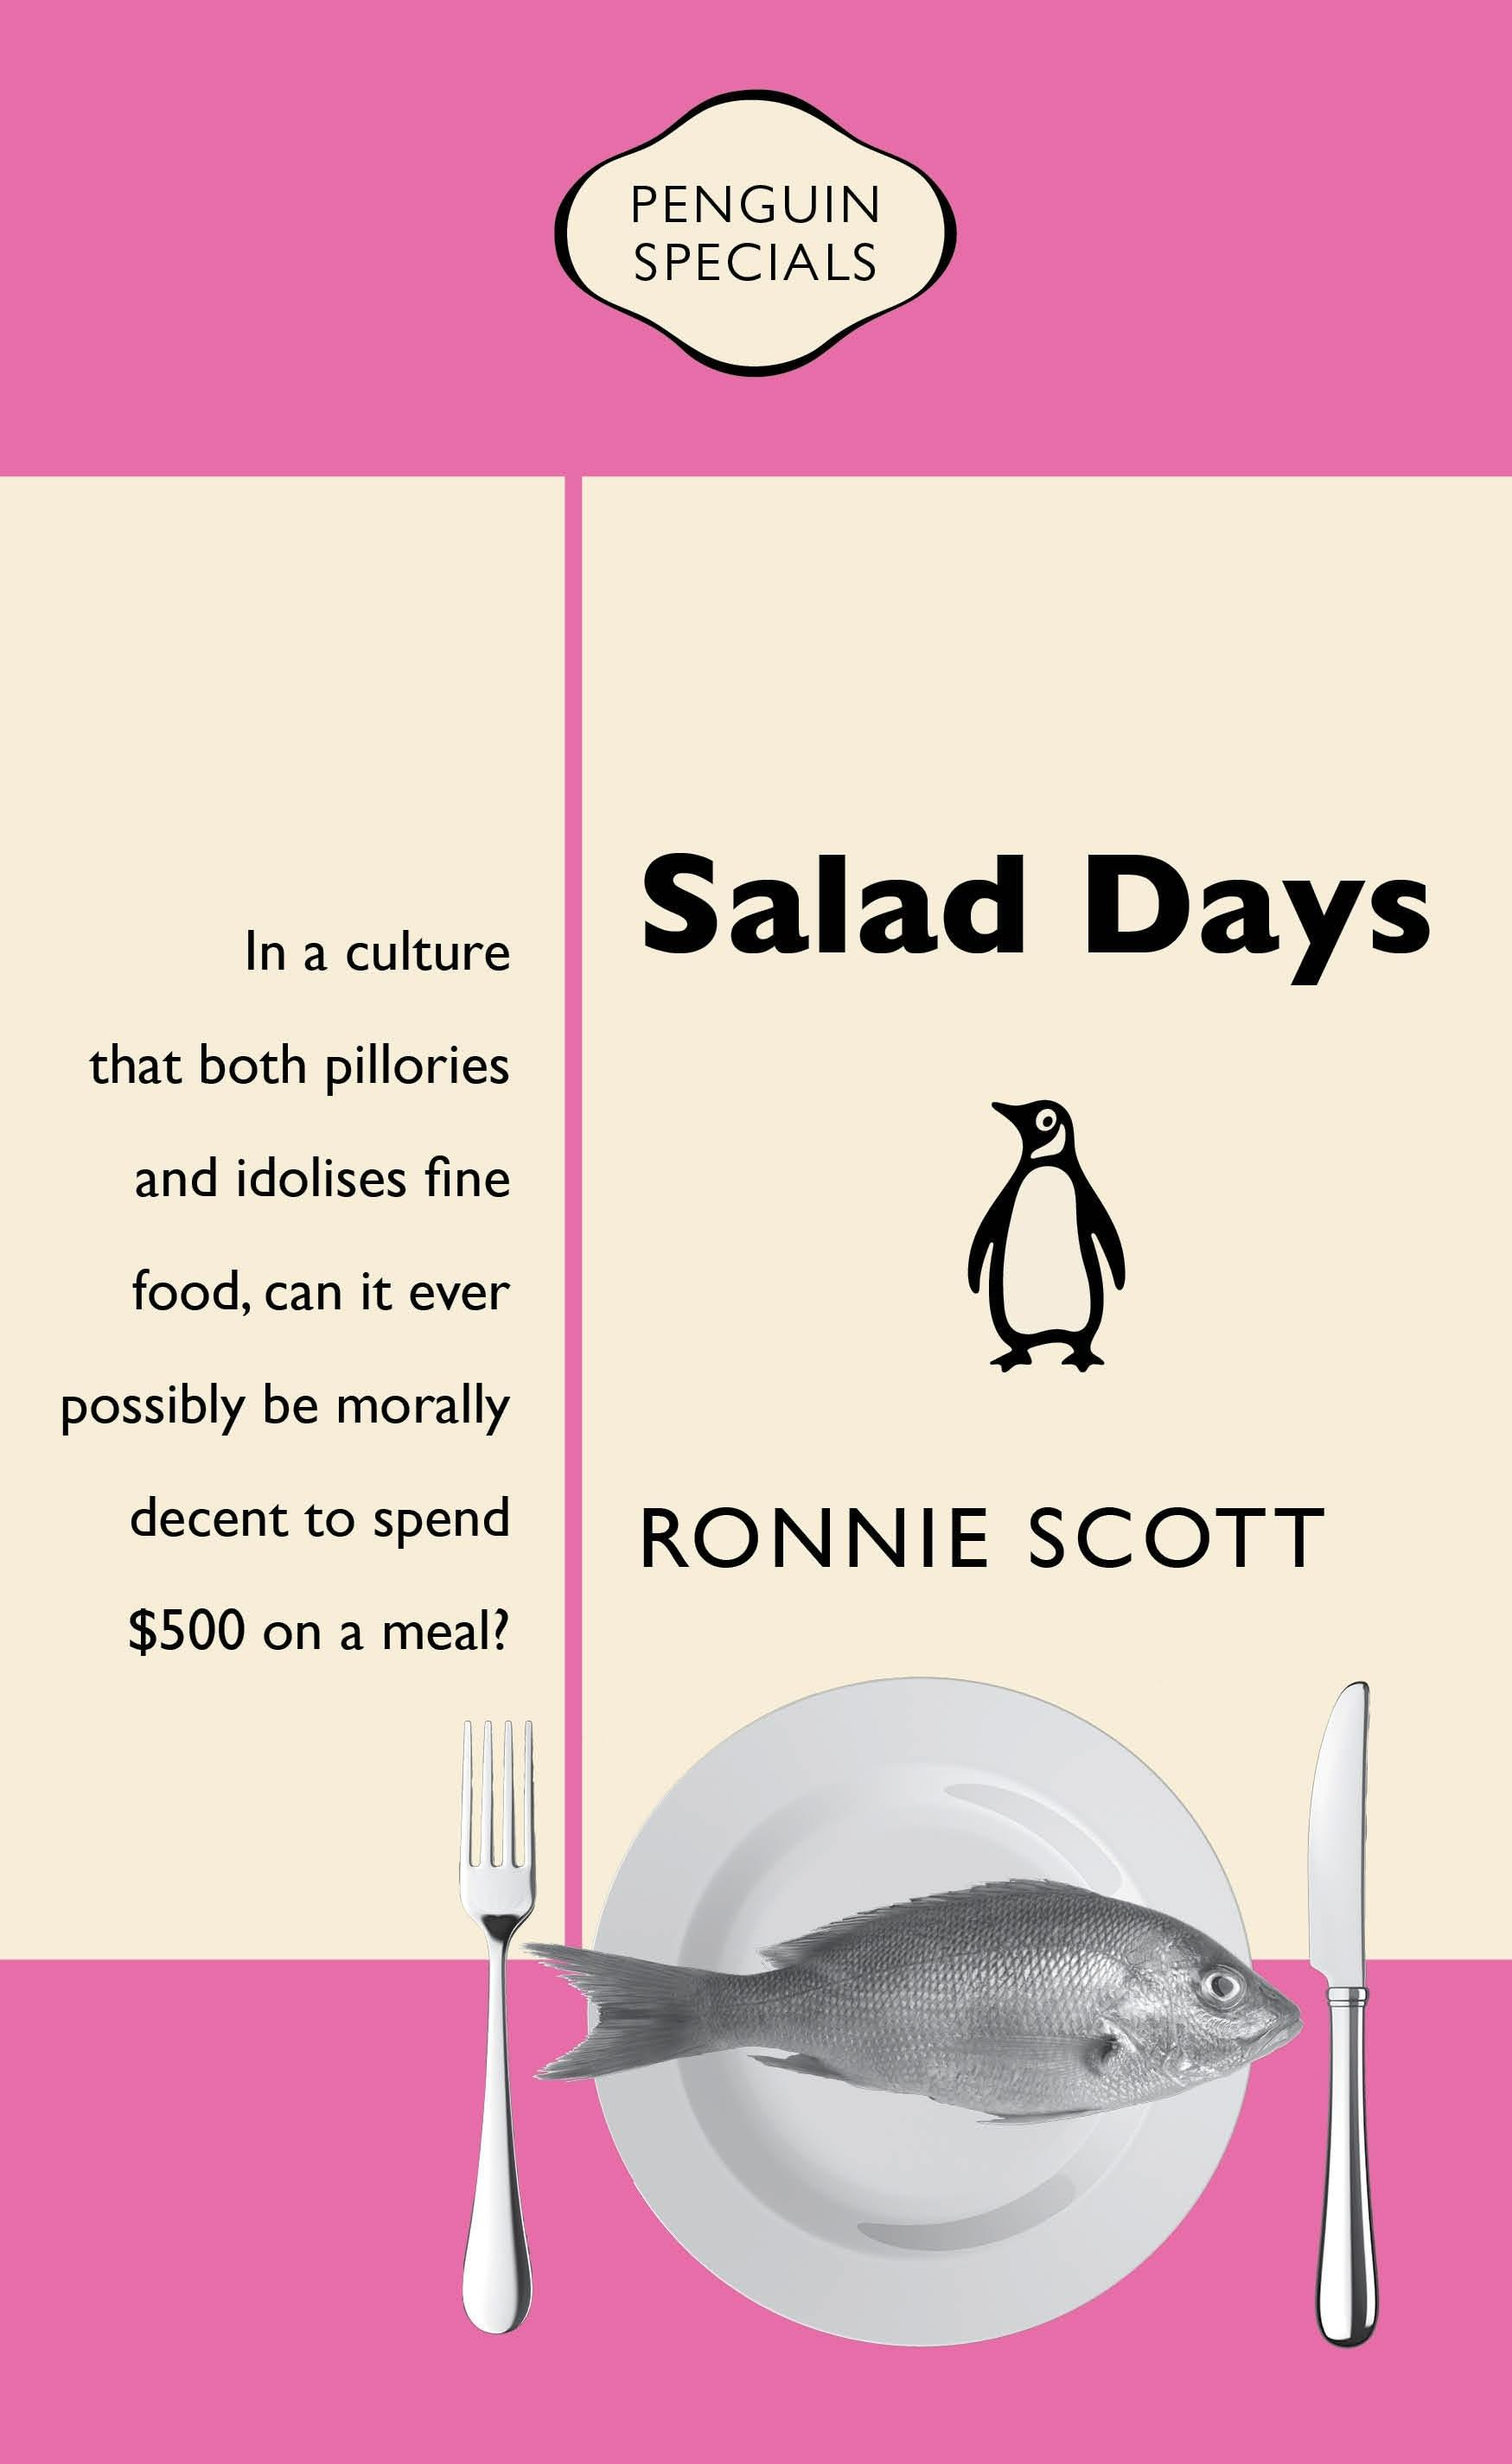 Salad Days: Penguin Special